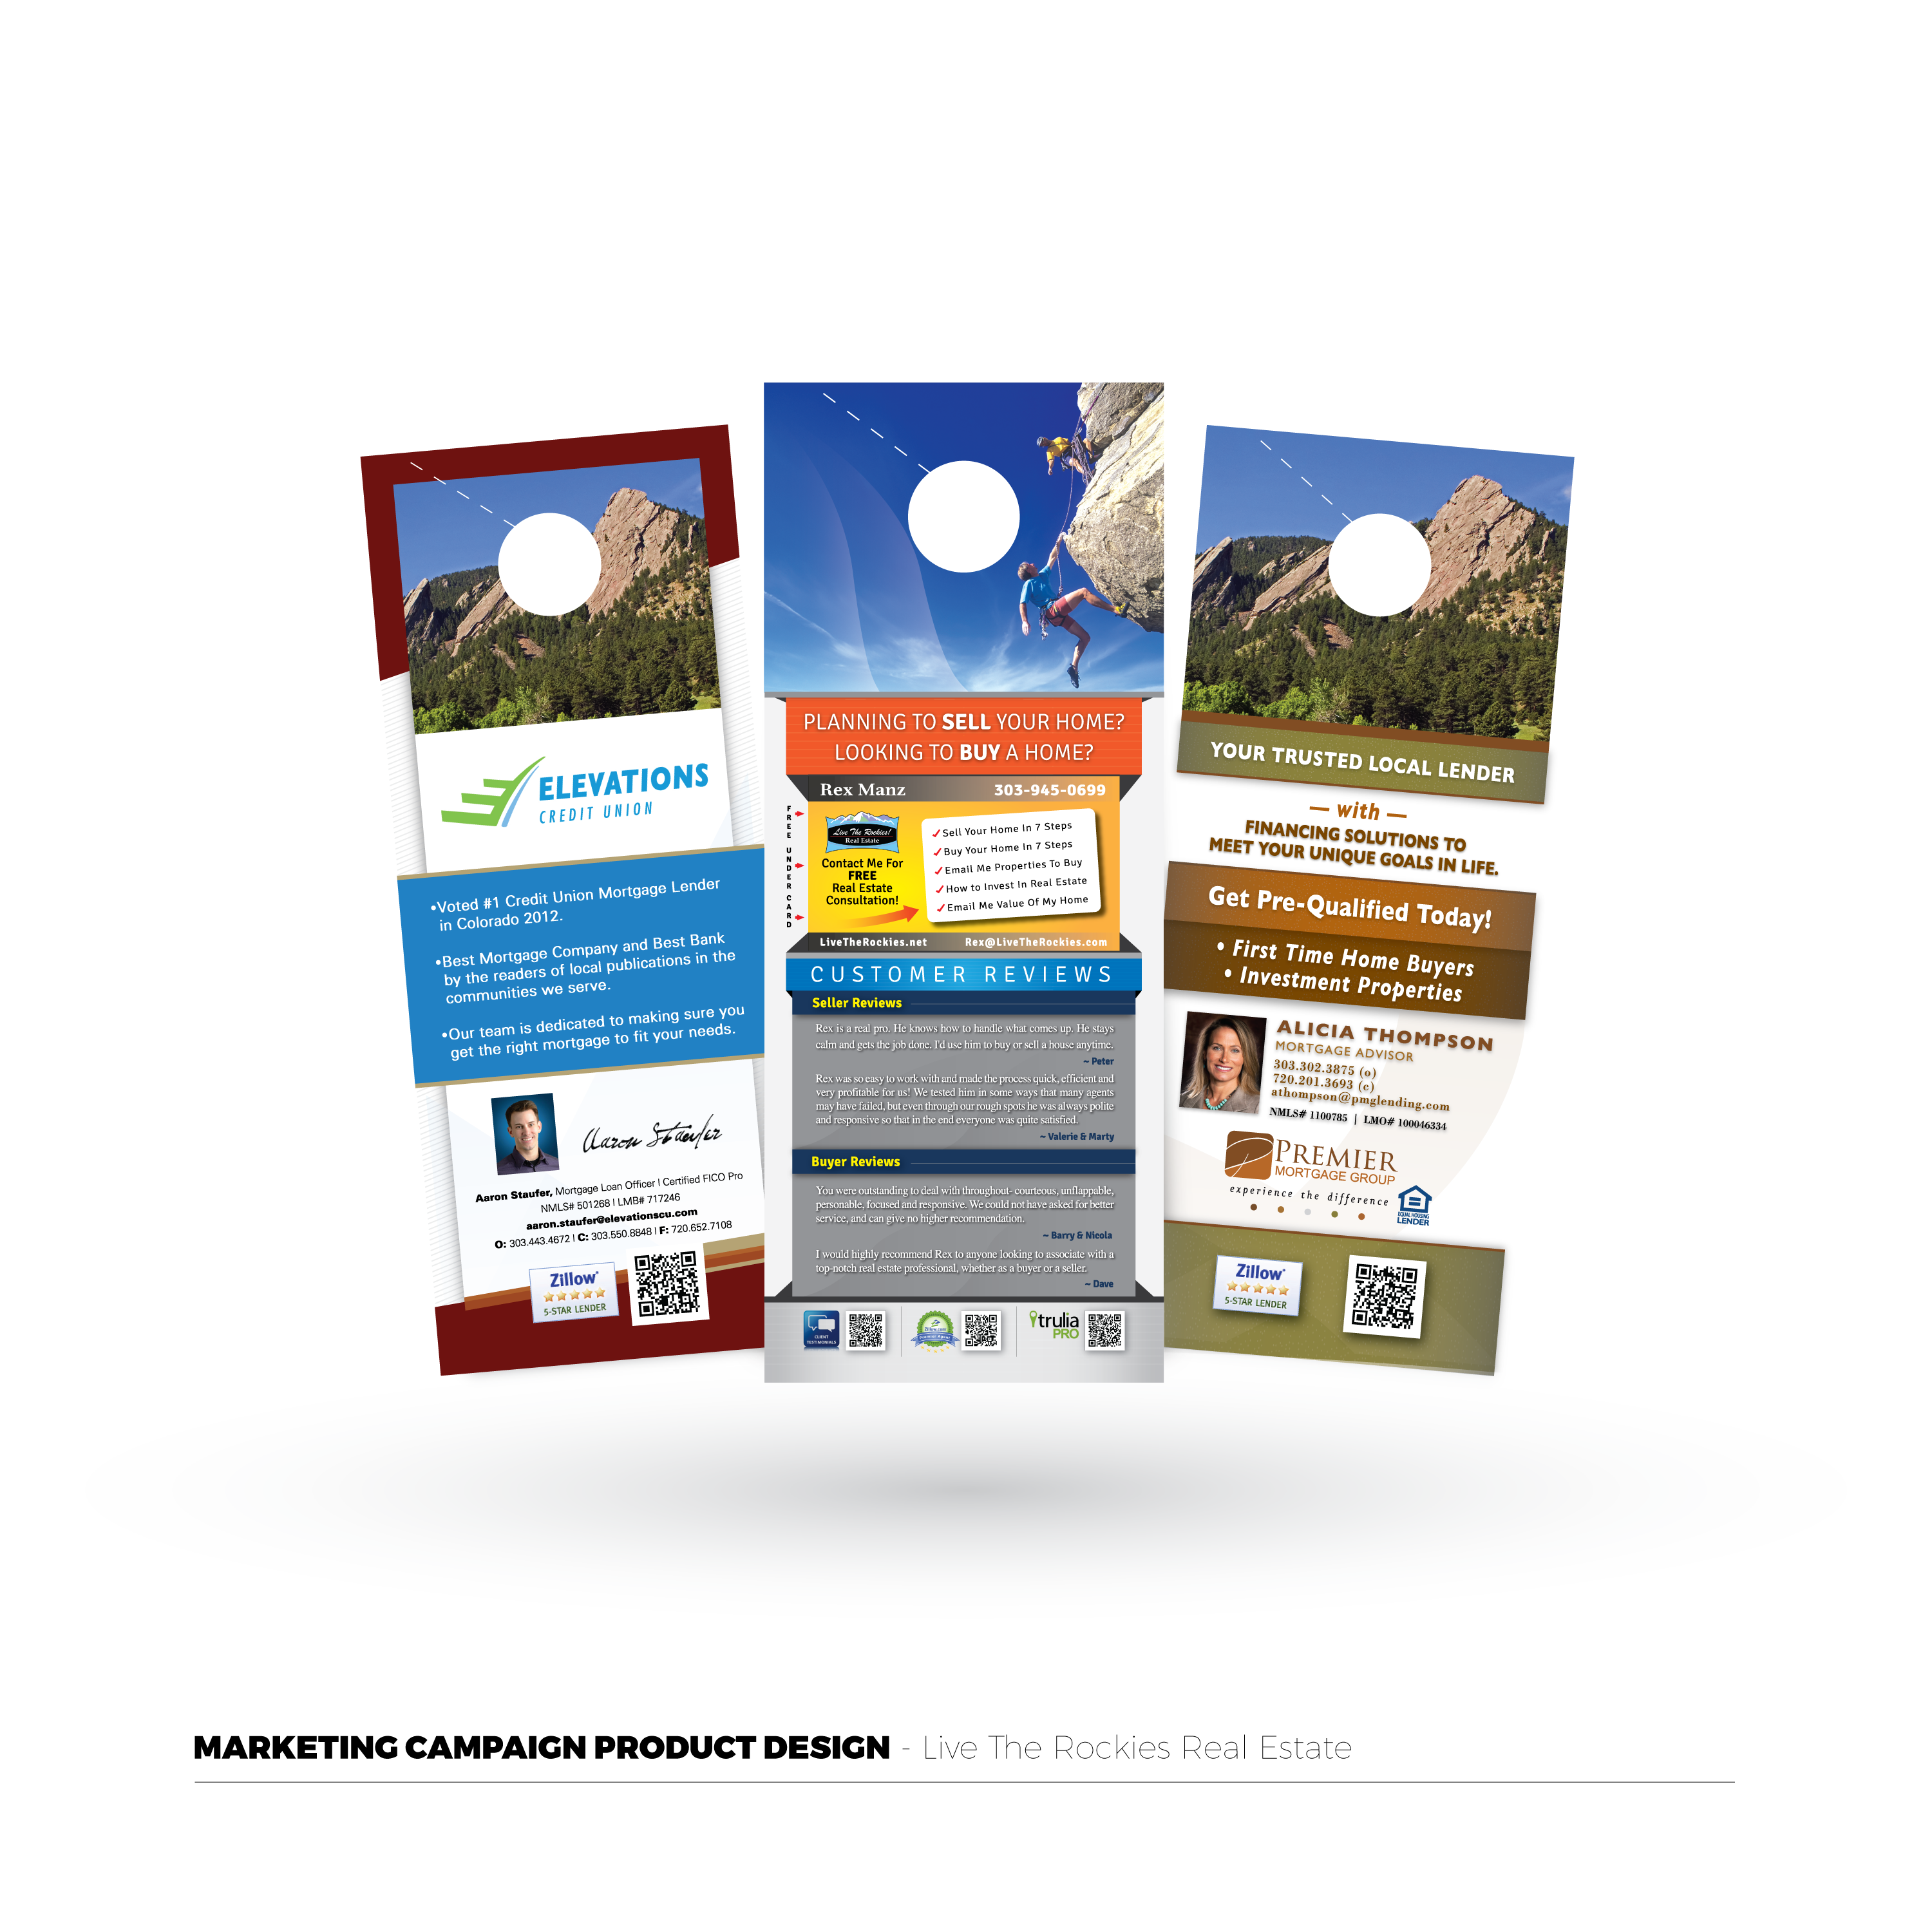 Live The Rockies Direct Marketing